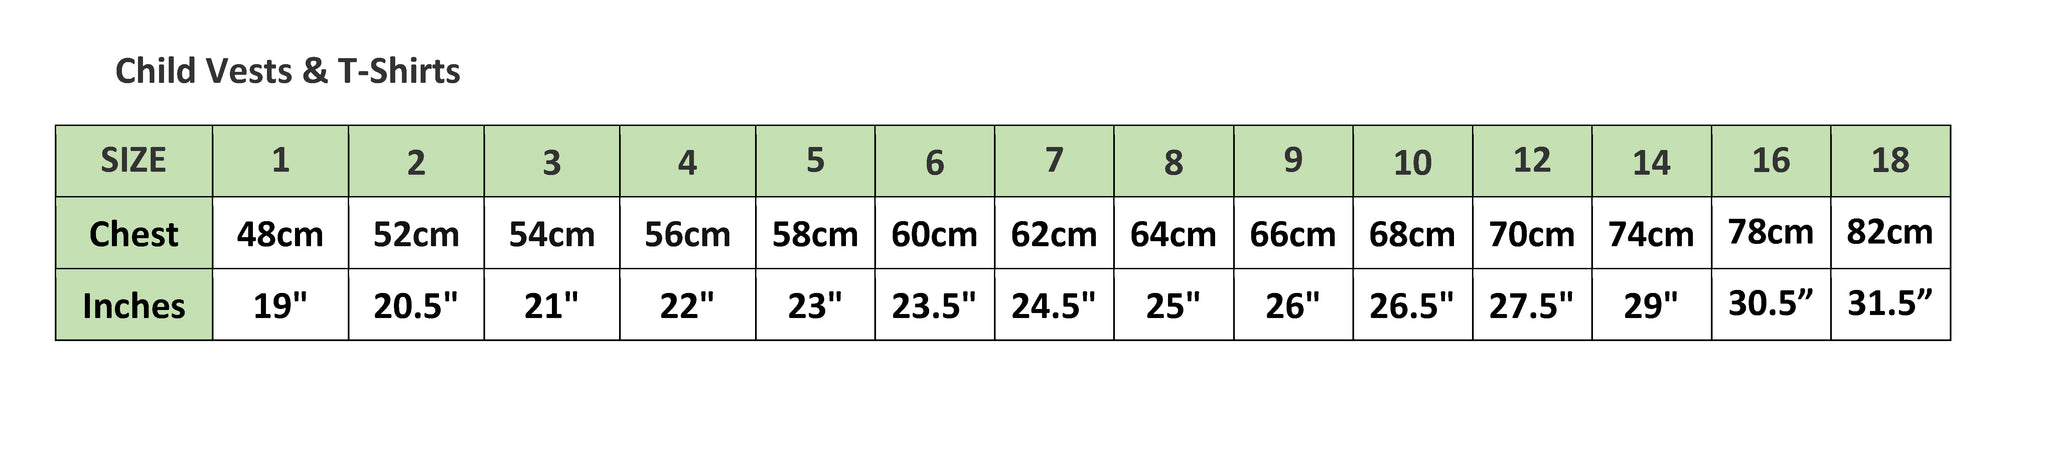 Child Vests and T-shirt Sizing Chart